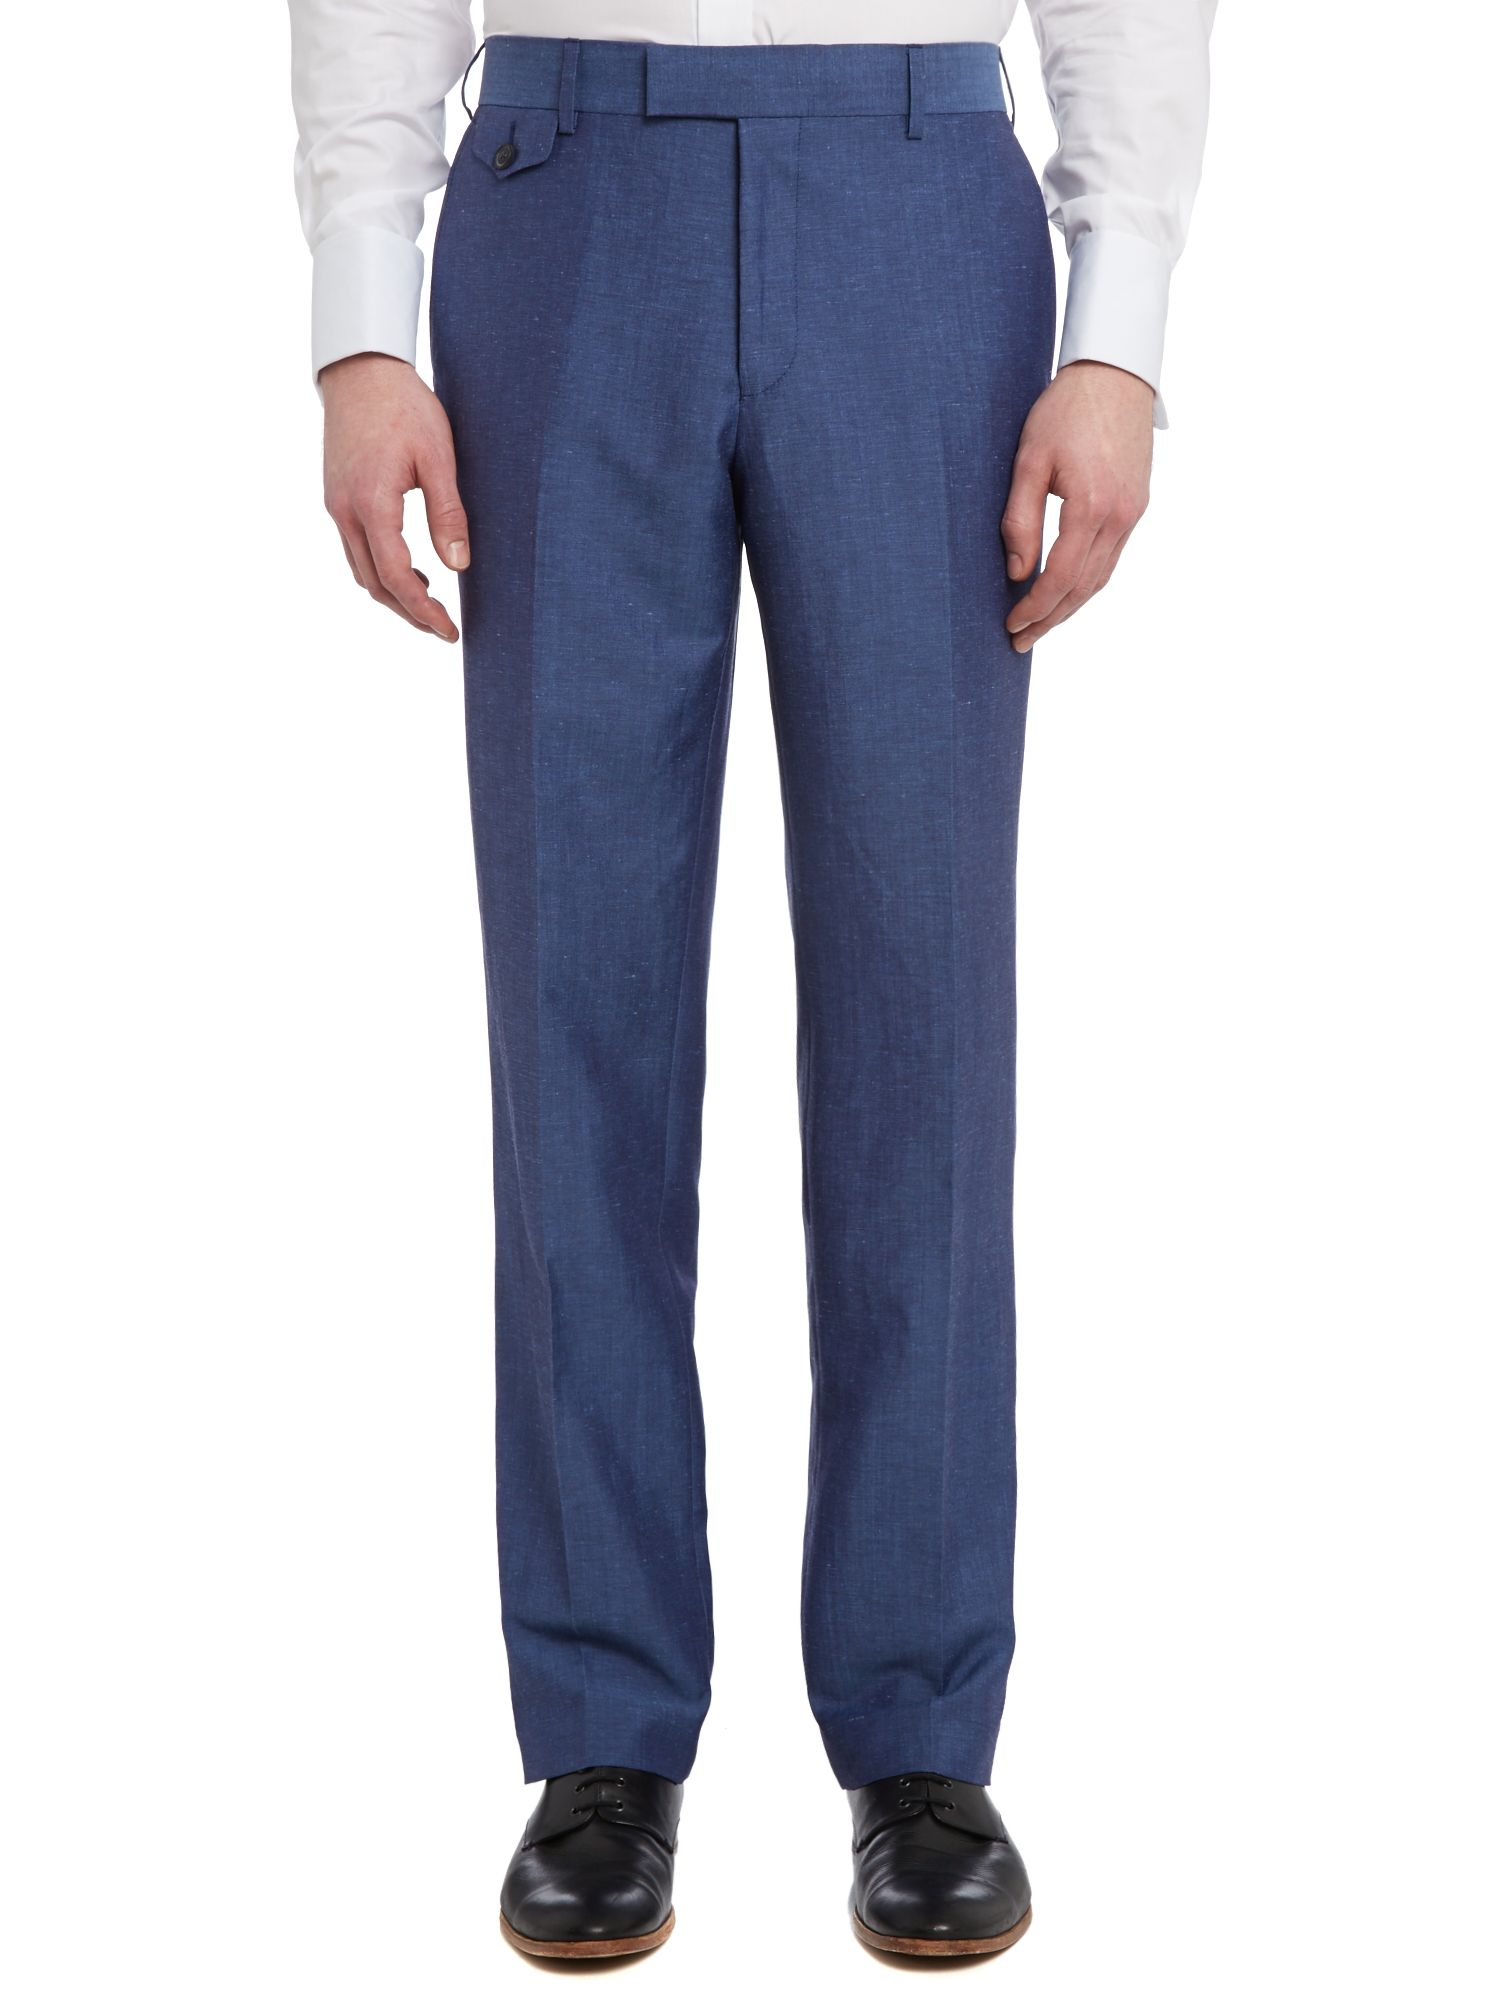 Sigatro sterling regular fit linen mix trouser